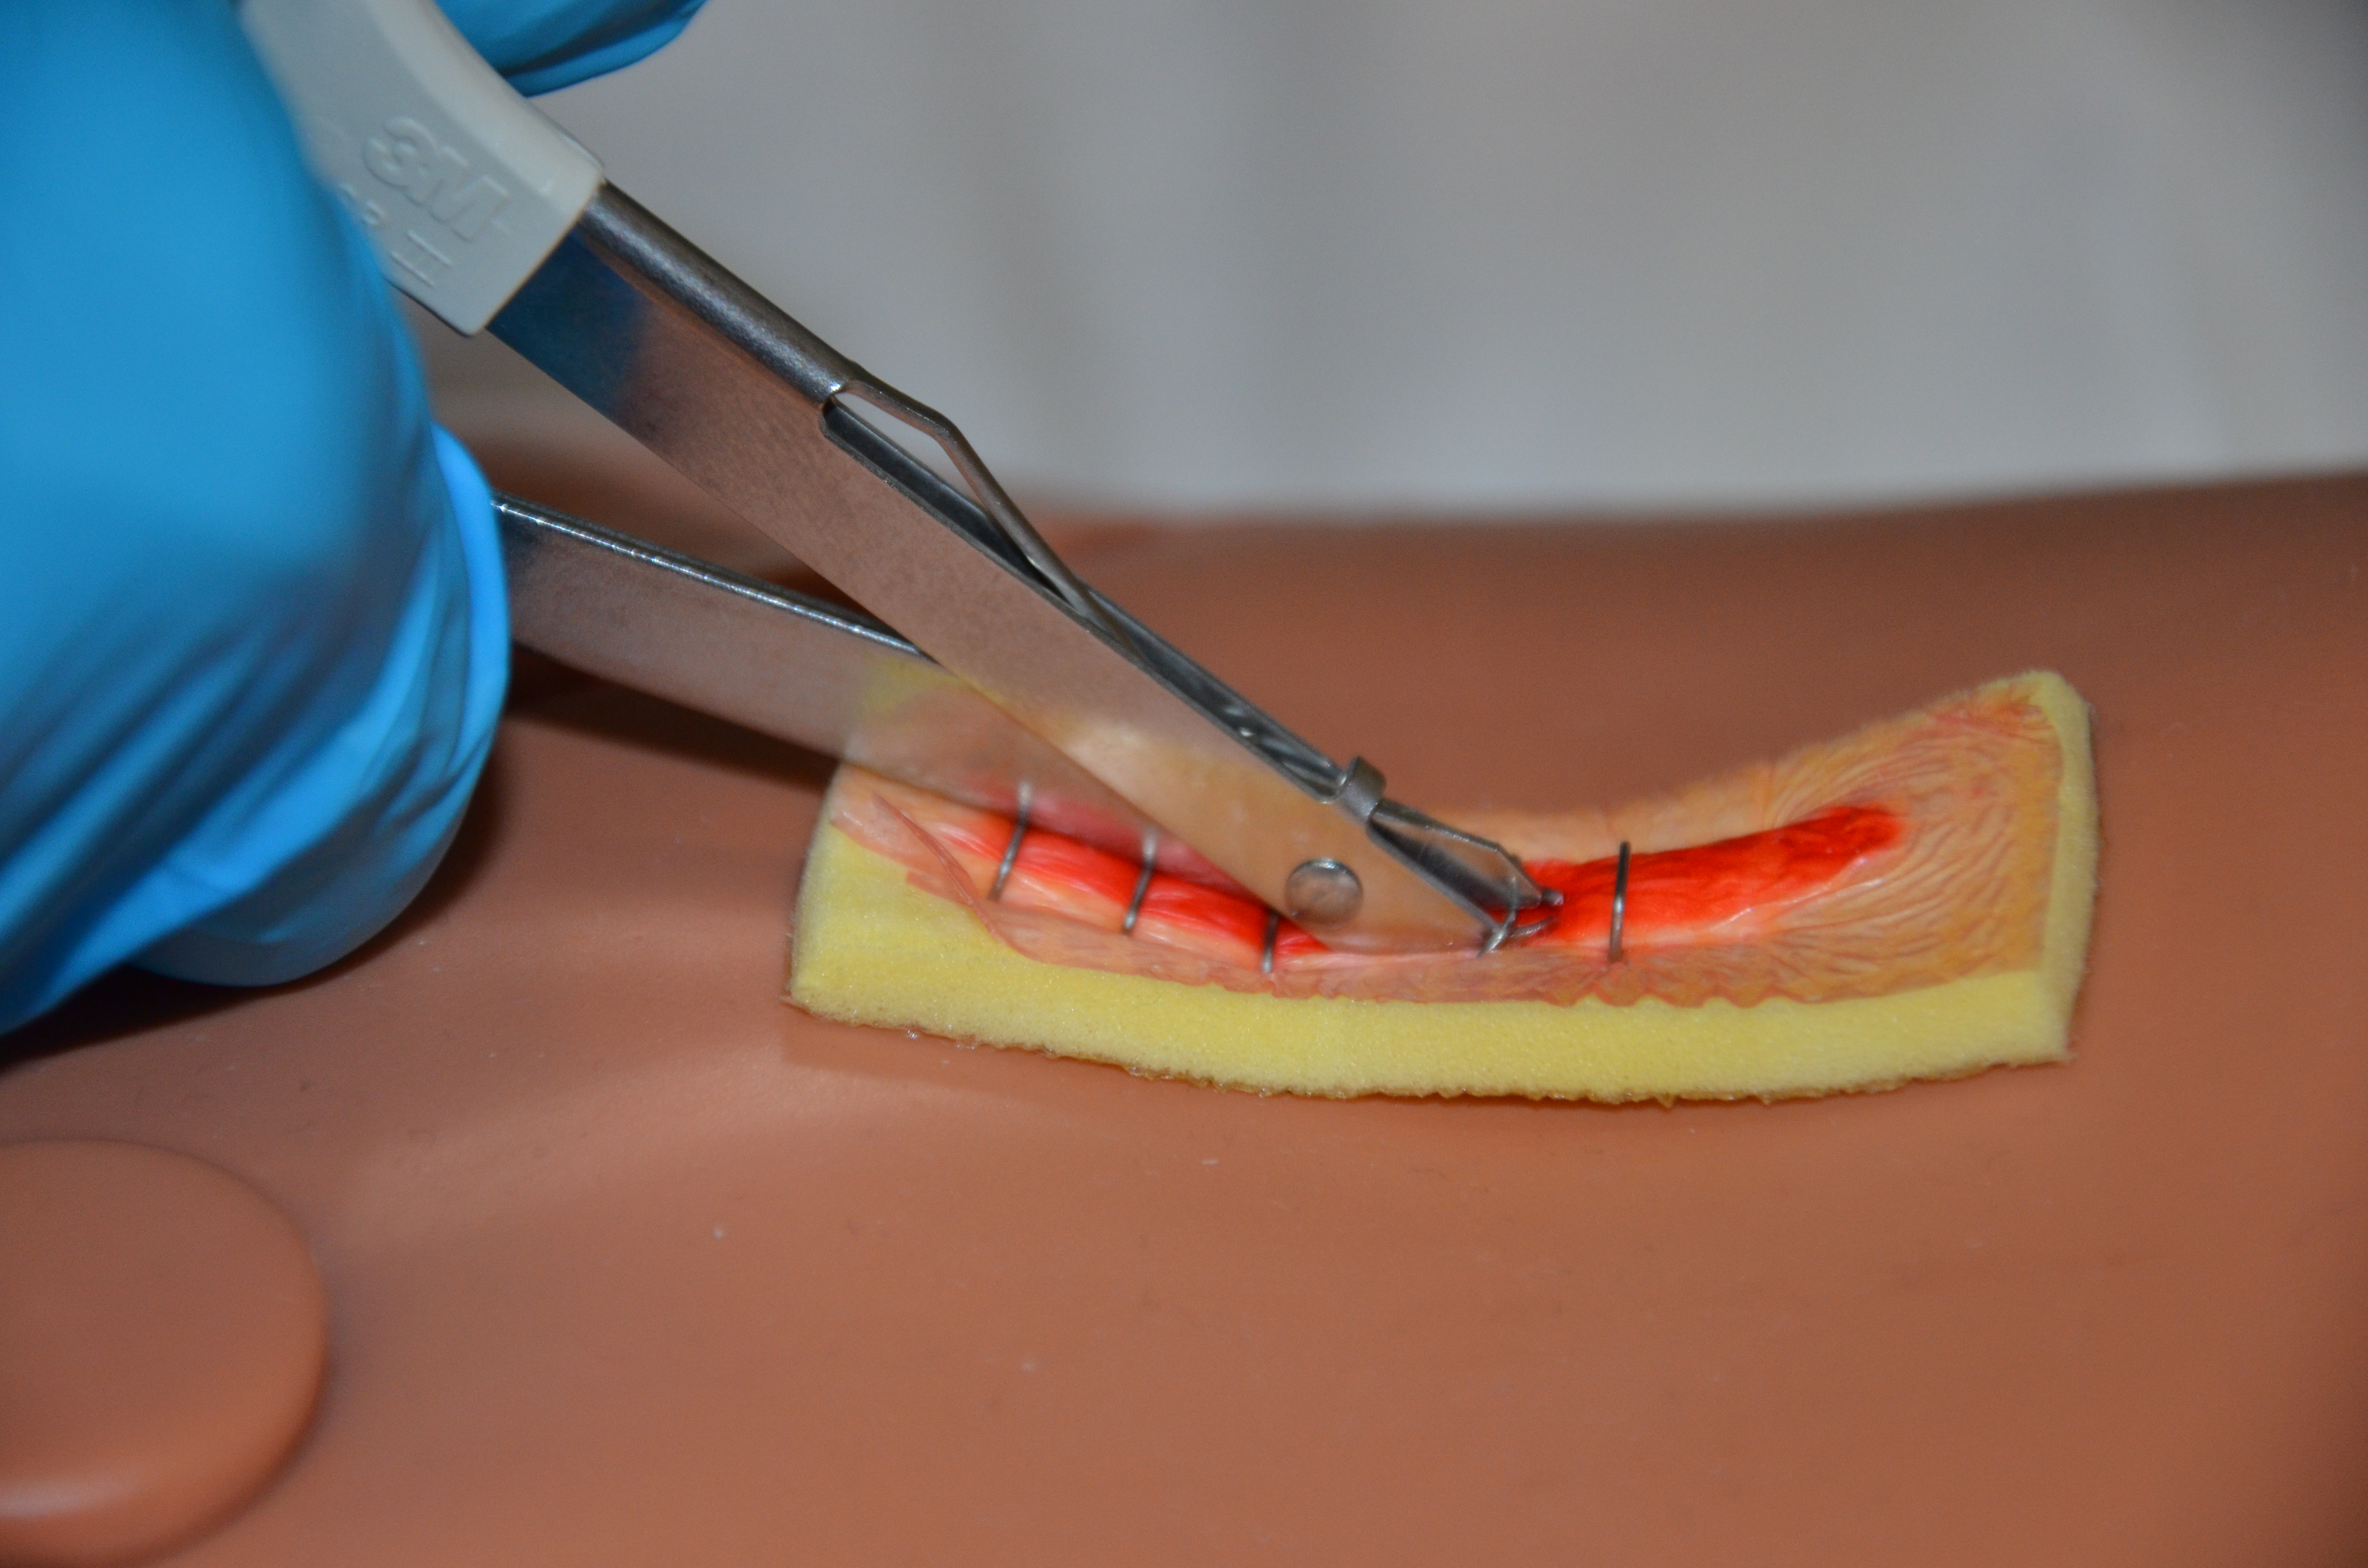 4 5 Staple Removal – Clinical Procedures for Safer Patient Care